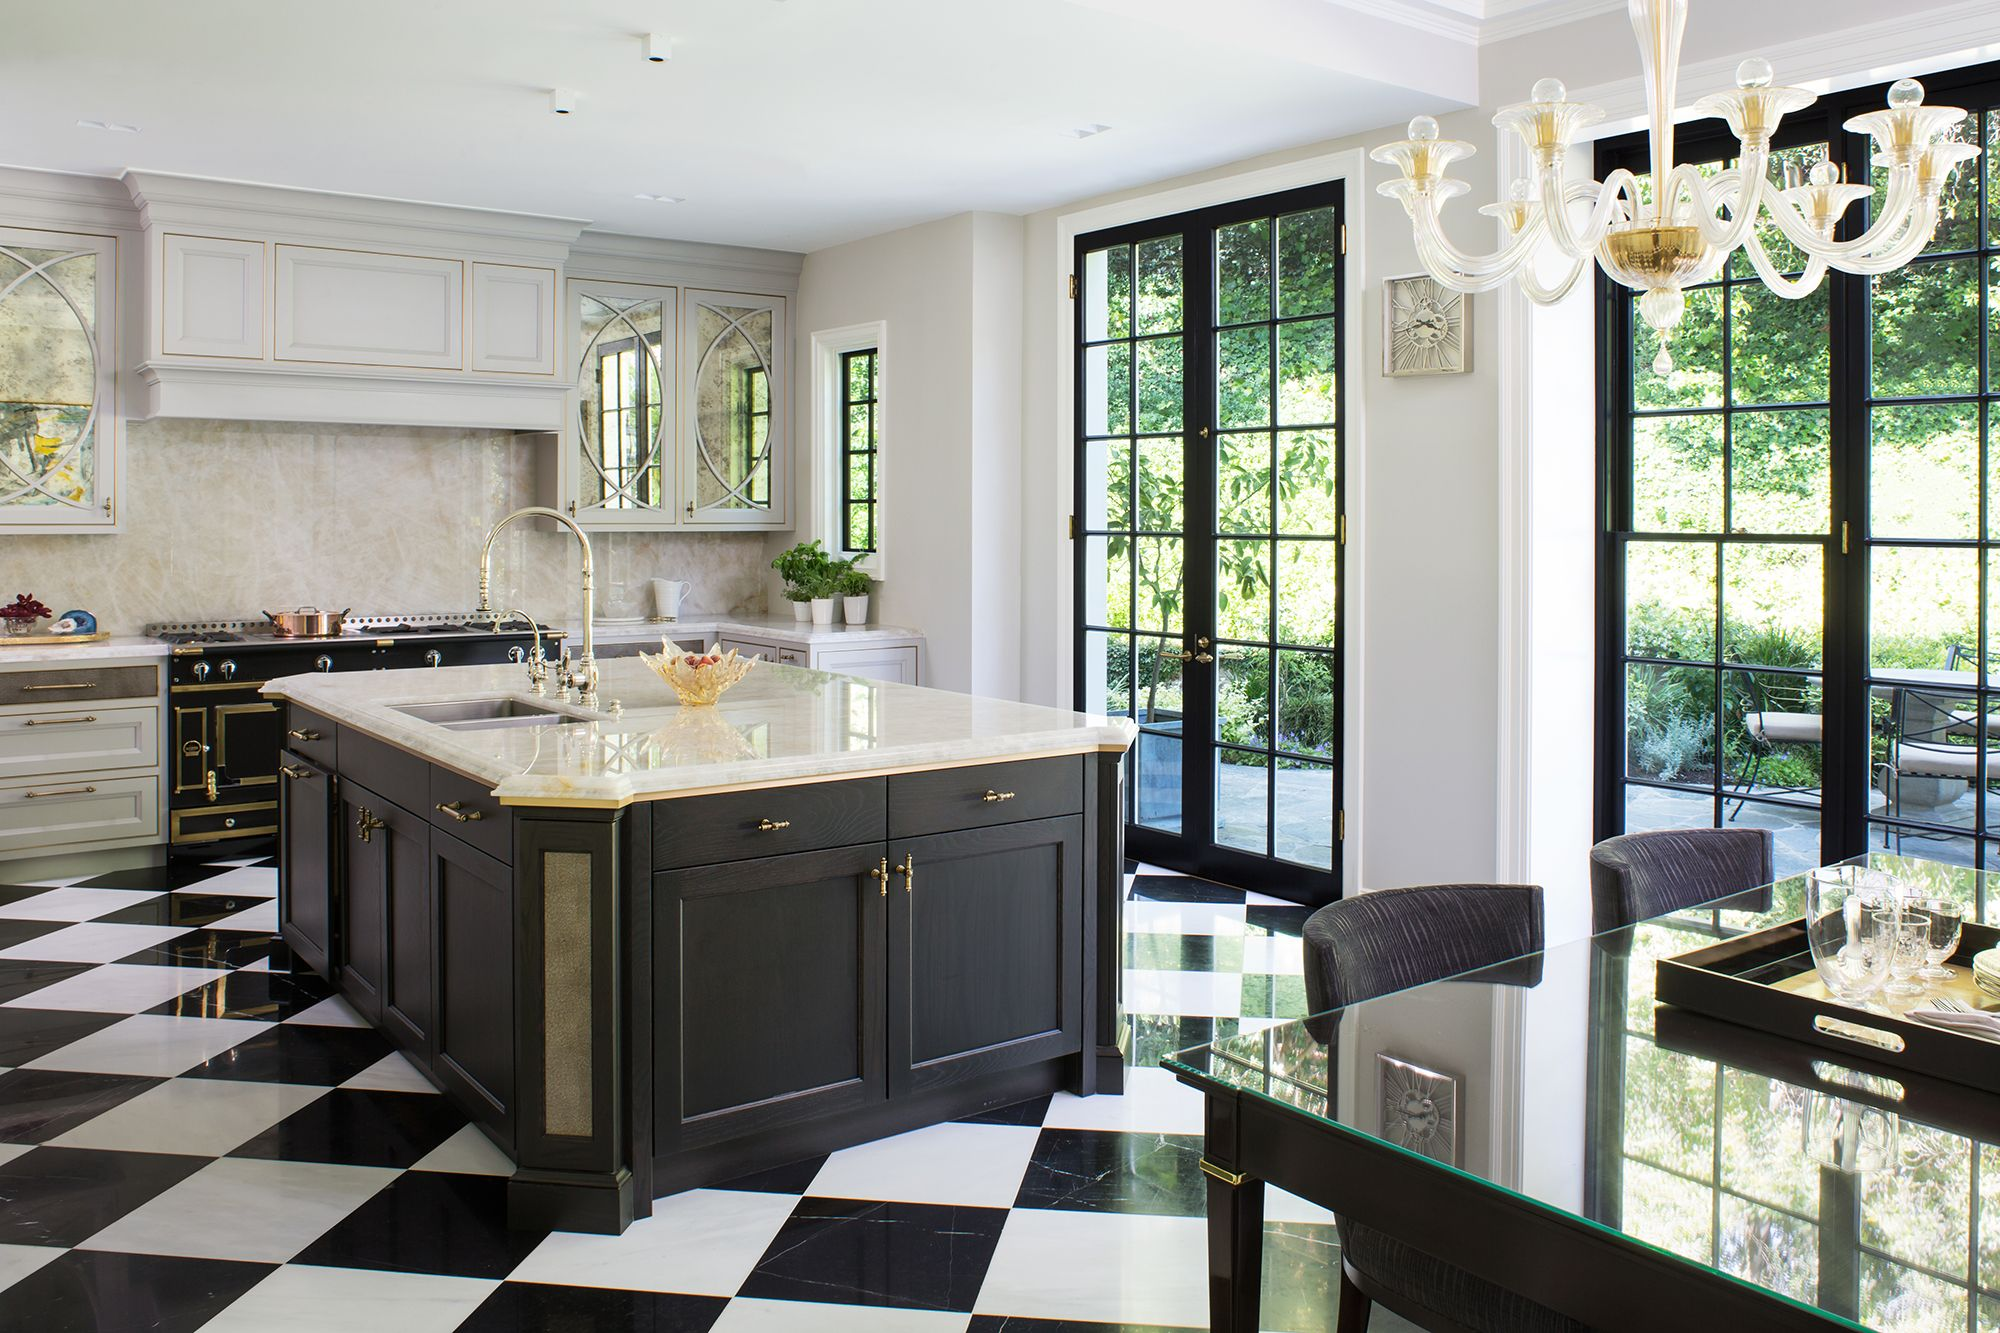 20+ Polished Kitchens with Dark Wash or Black Kitchen Islands